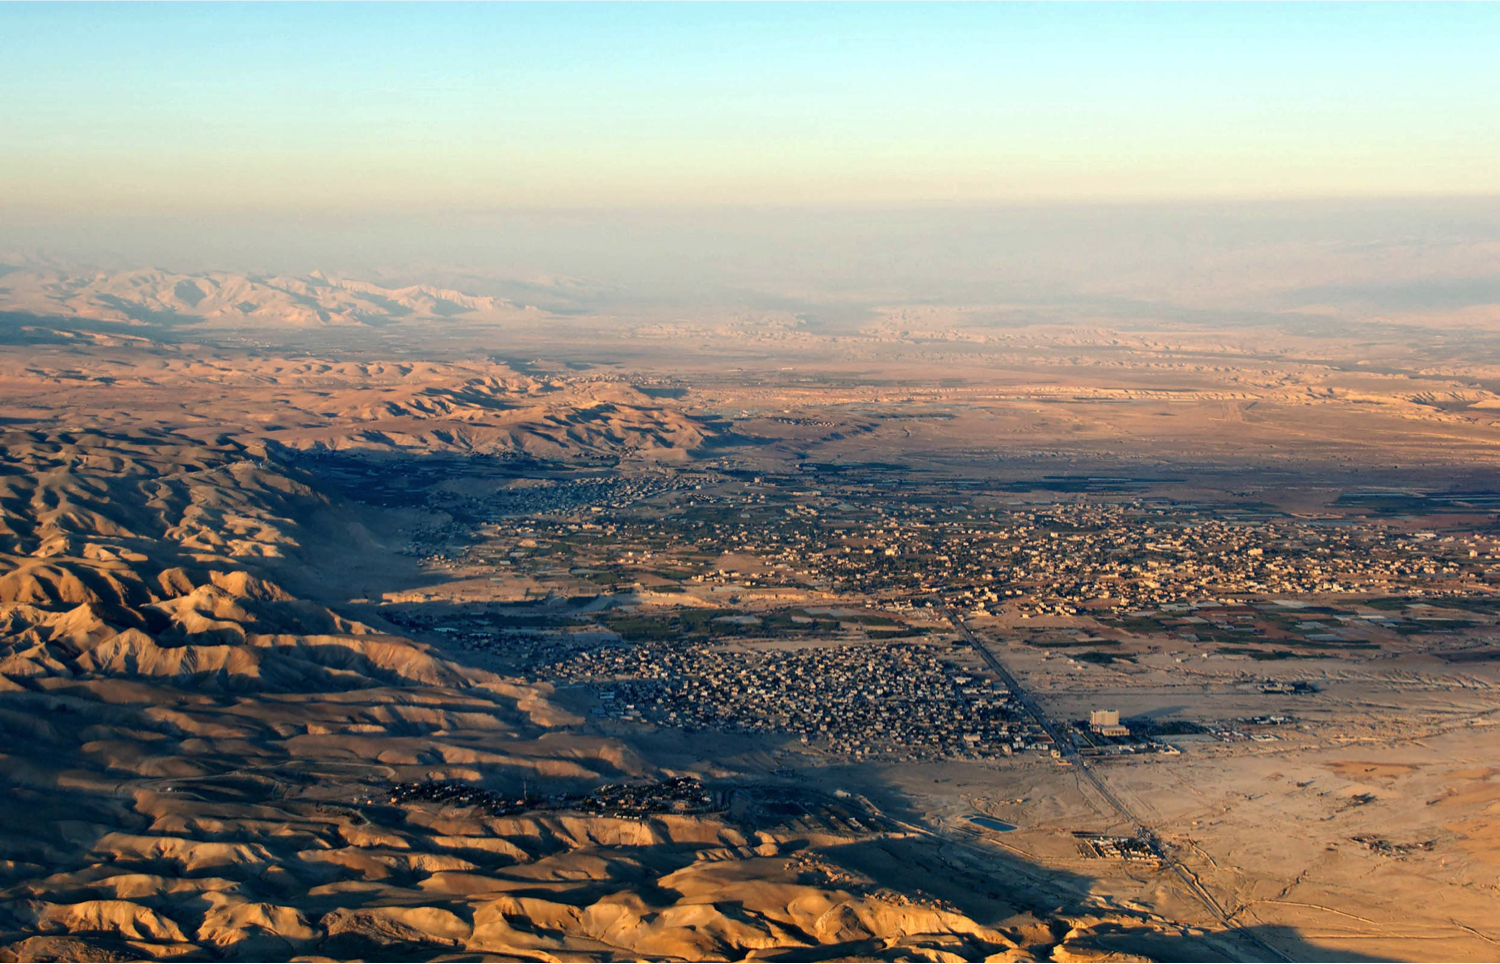 The modern city of Jericho and the wilderness rising to the west. Photo from BiblePlaces.com.